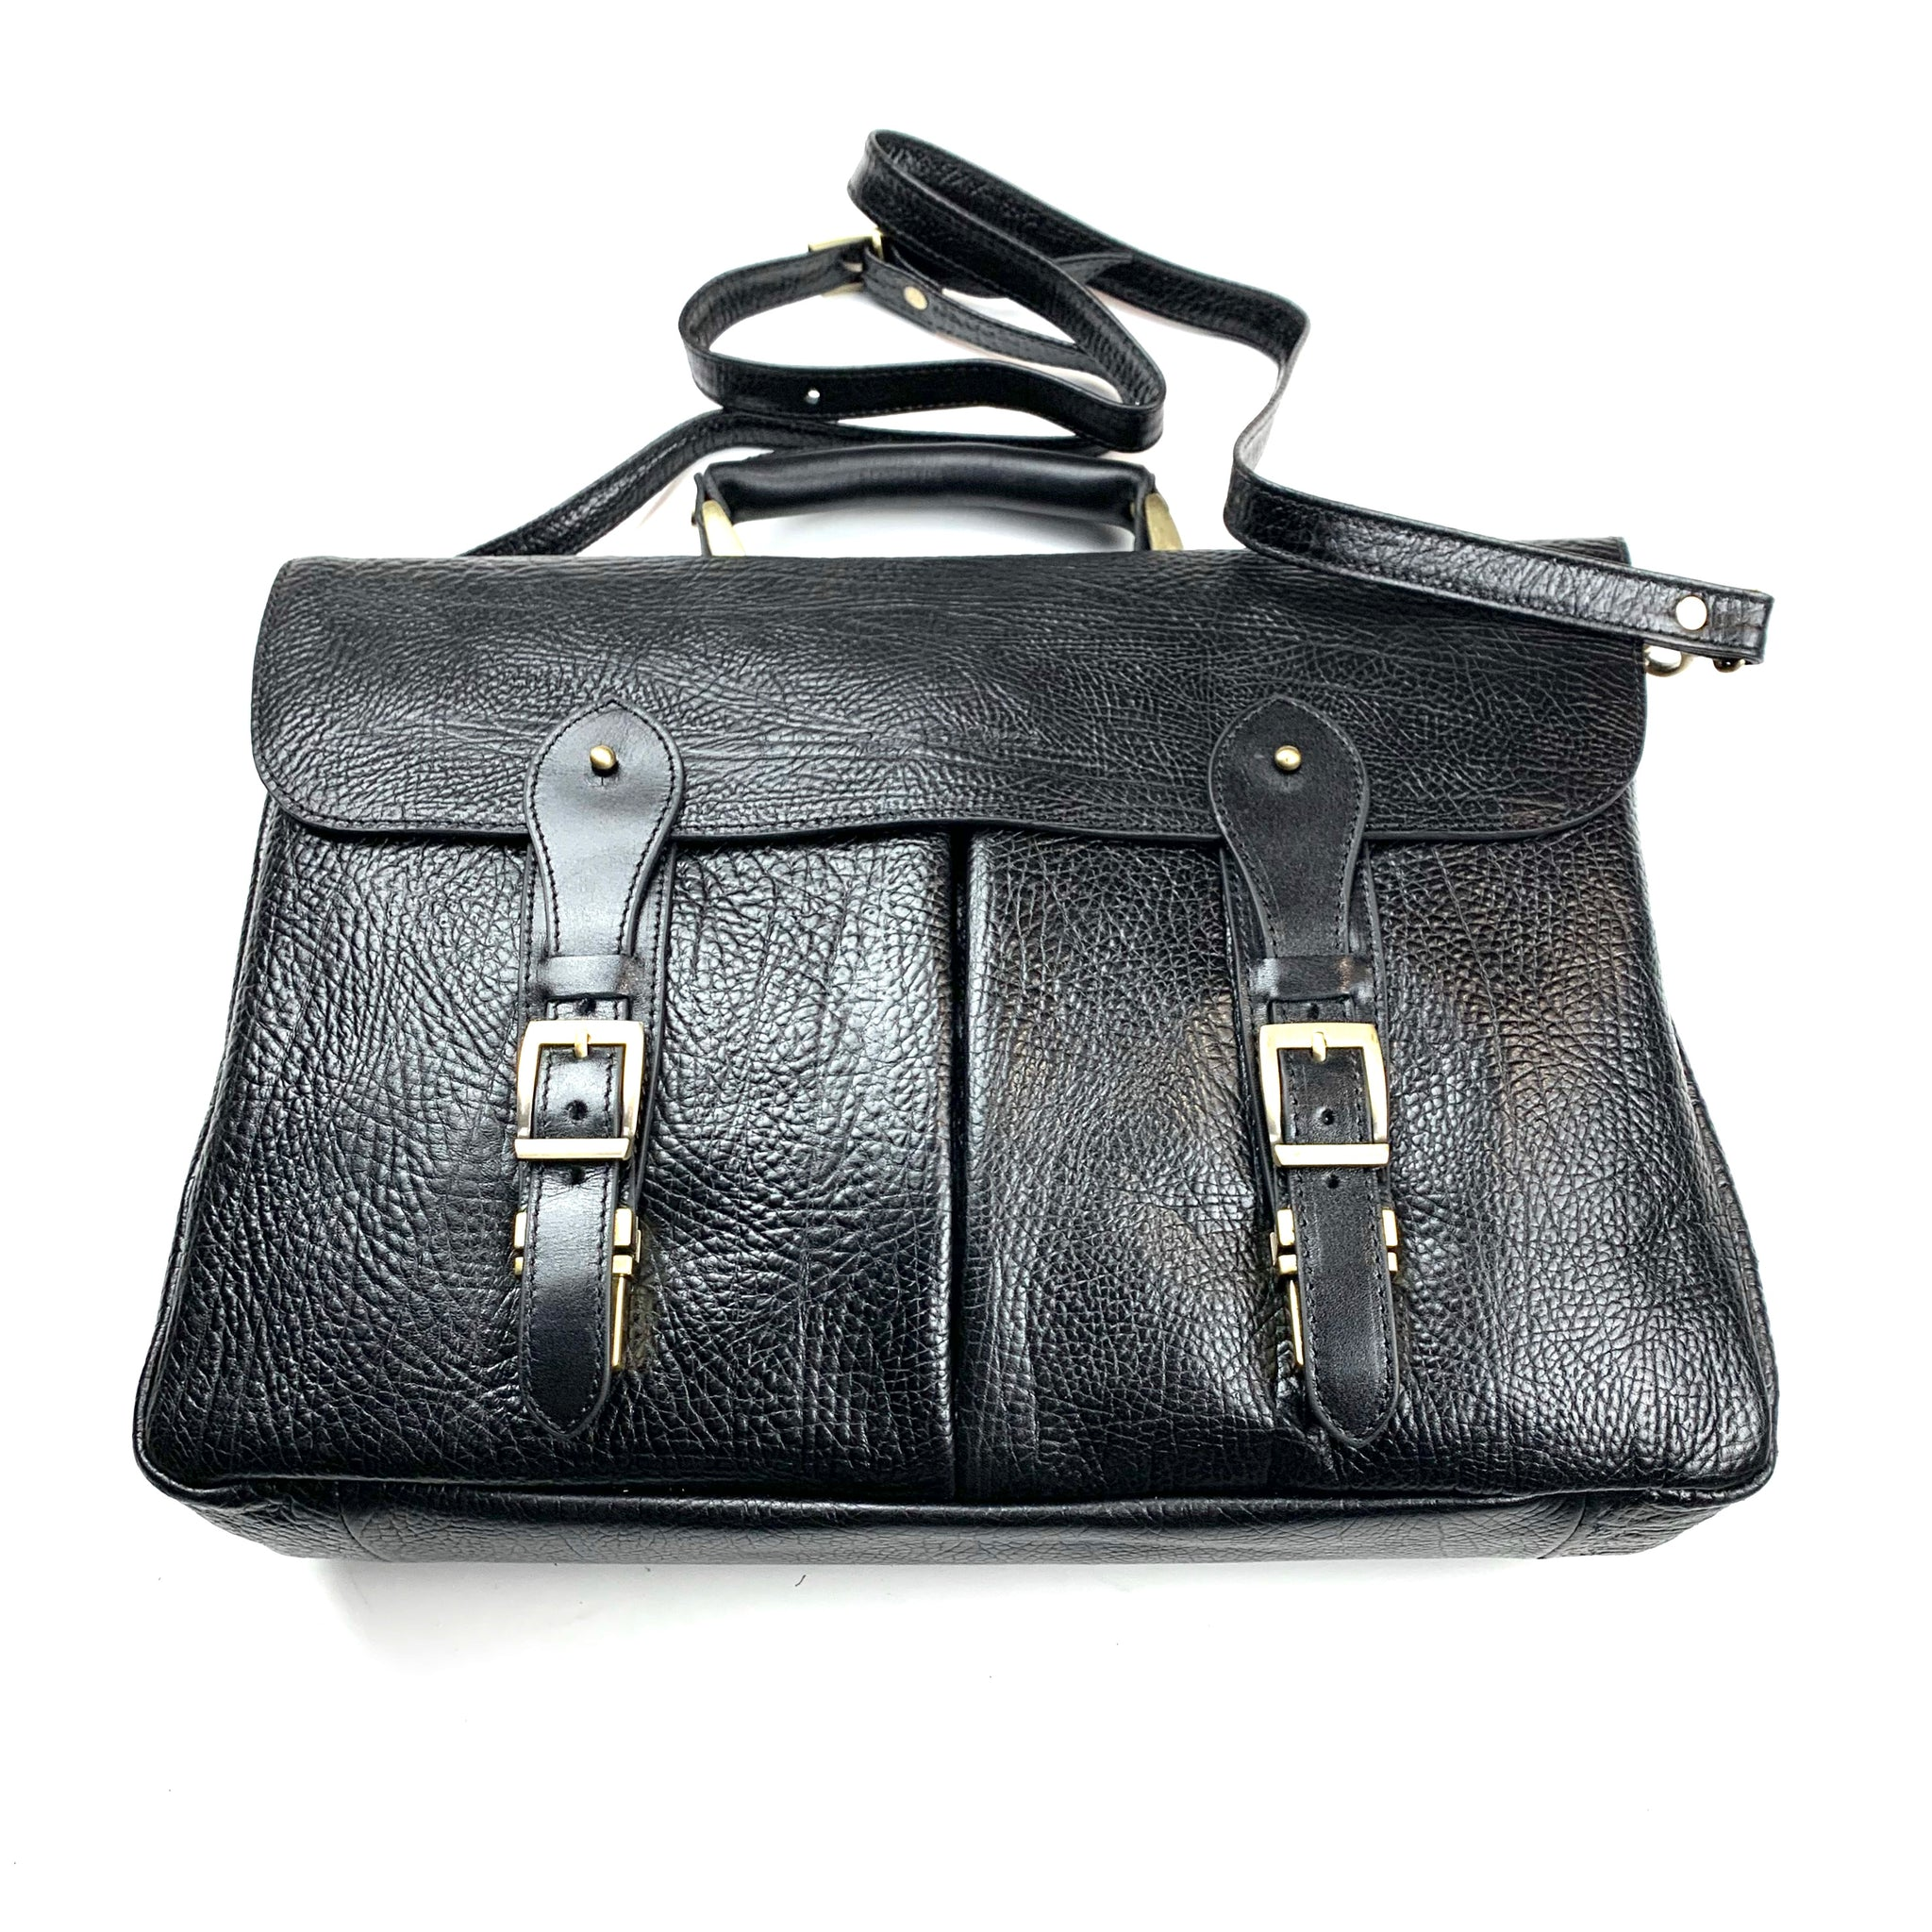 Tony Bellucci Men's leather bag